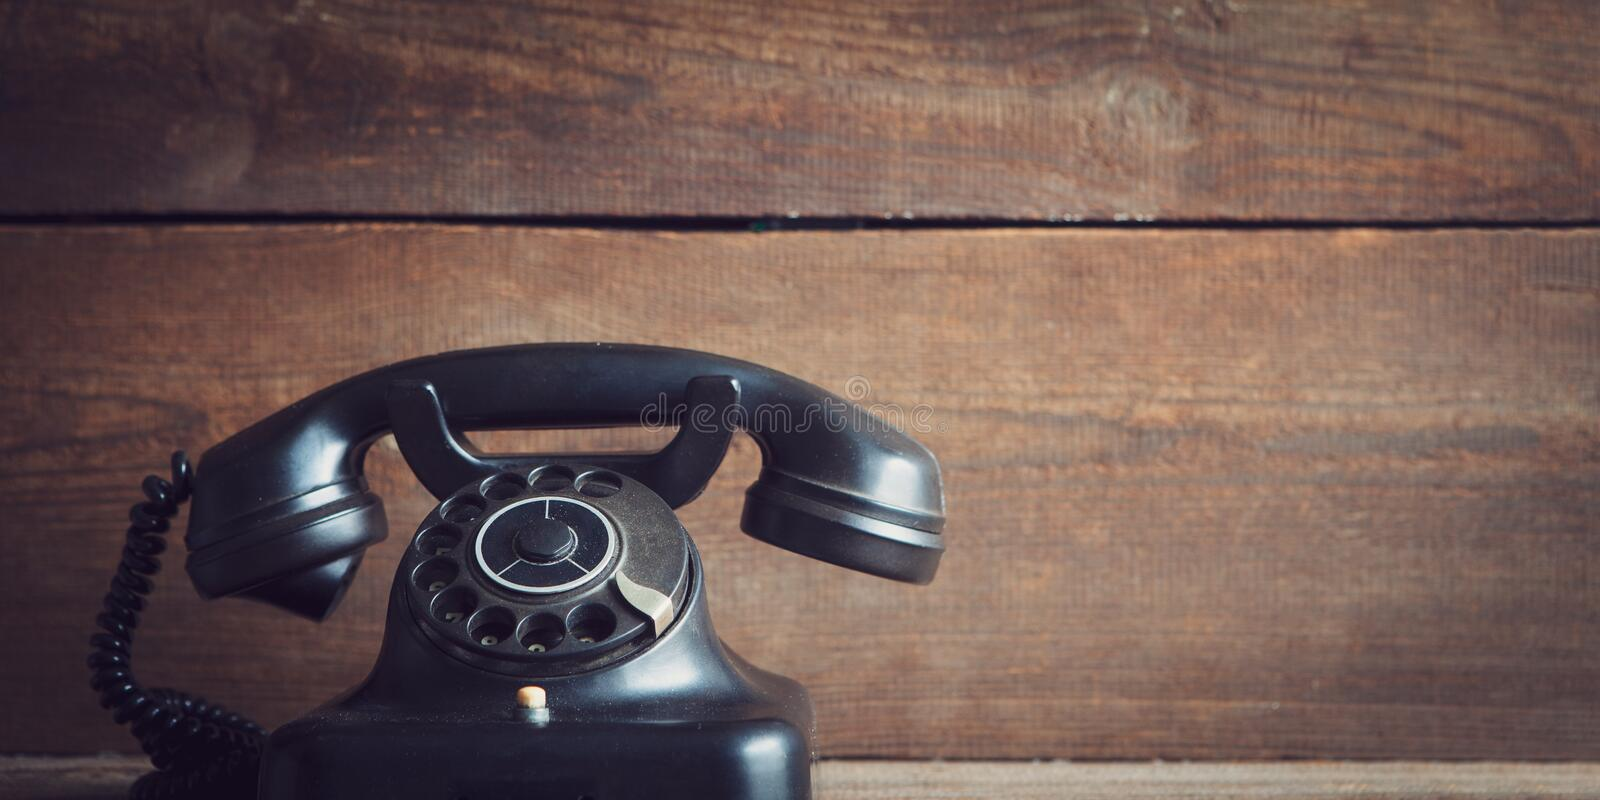 Rotary dial telephone. Vintage rotary dial telephone on wooden board with copy space stock images